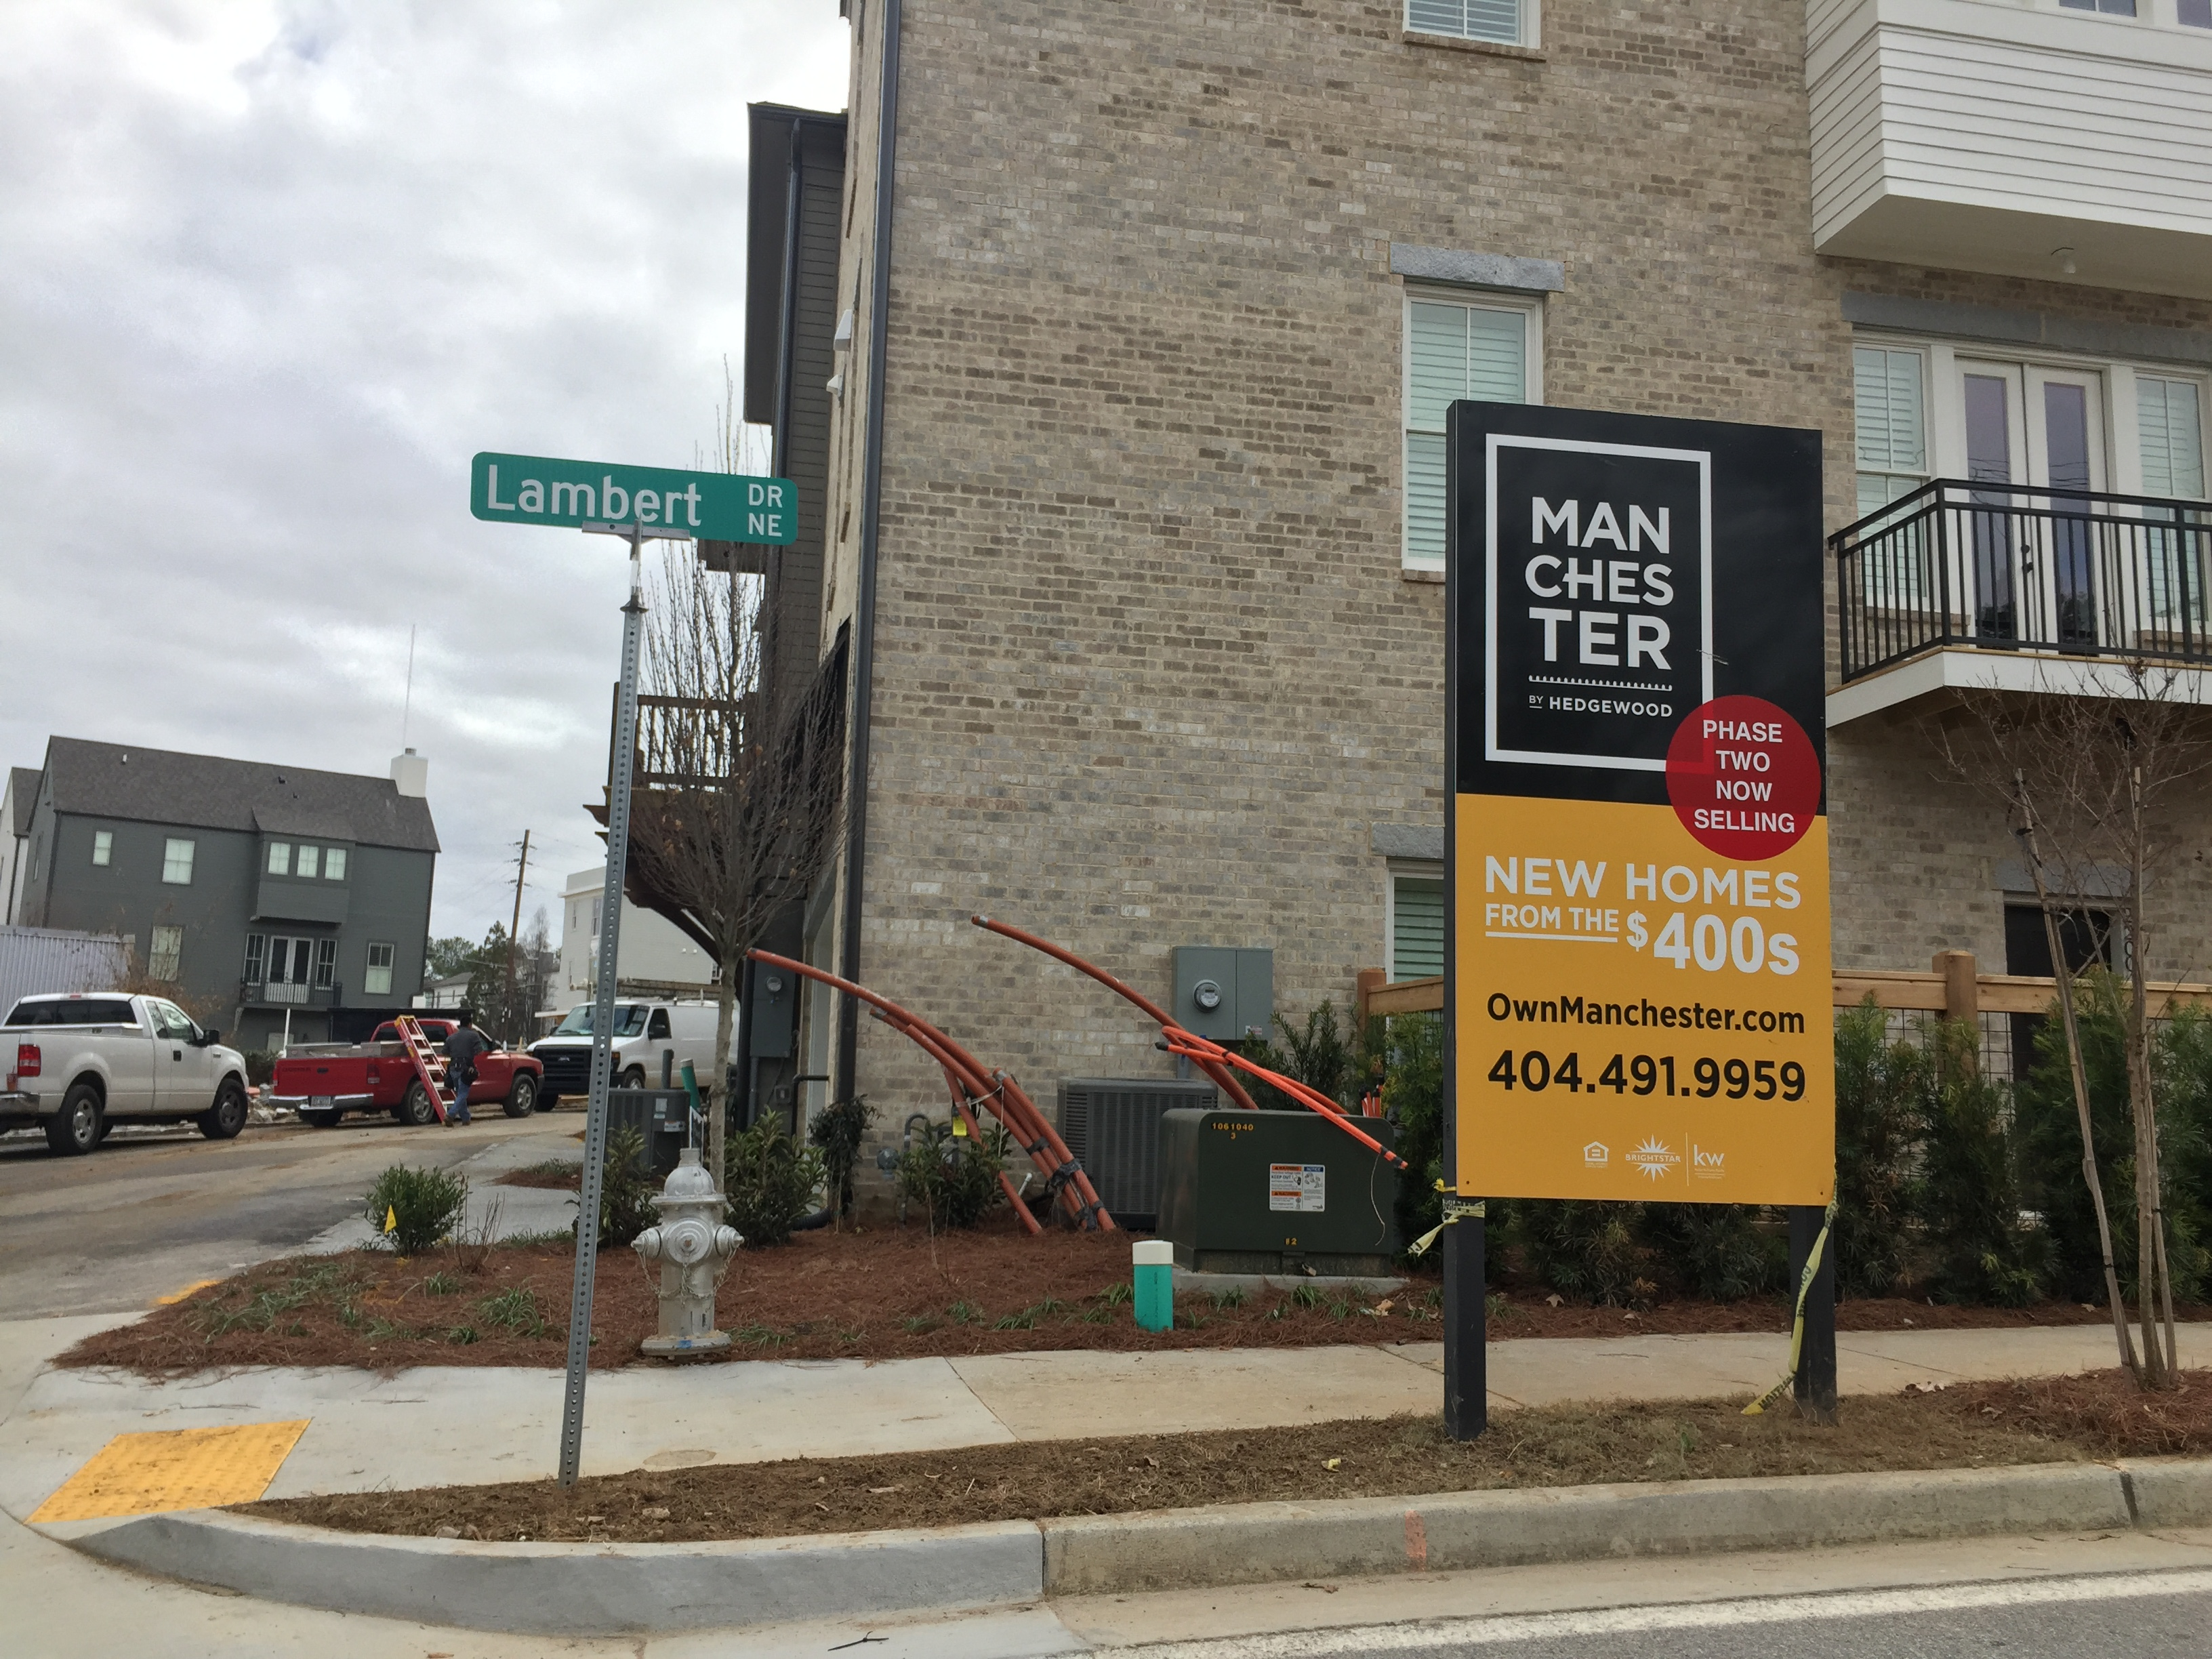 A sign for the development stands in front of new houses evoking old-town style.